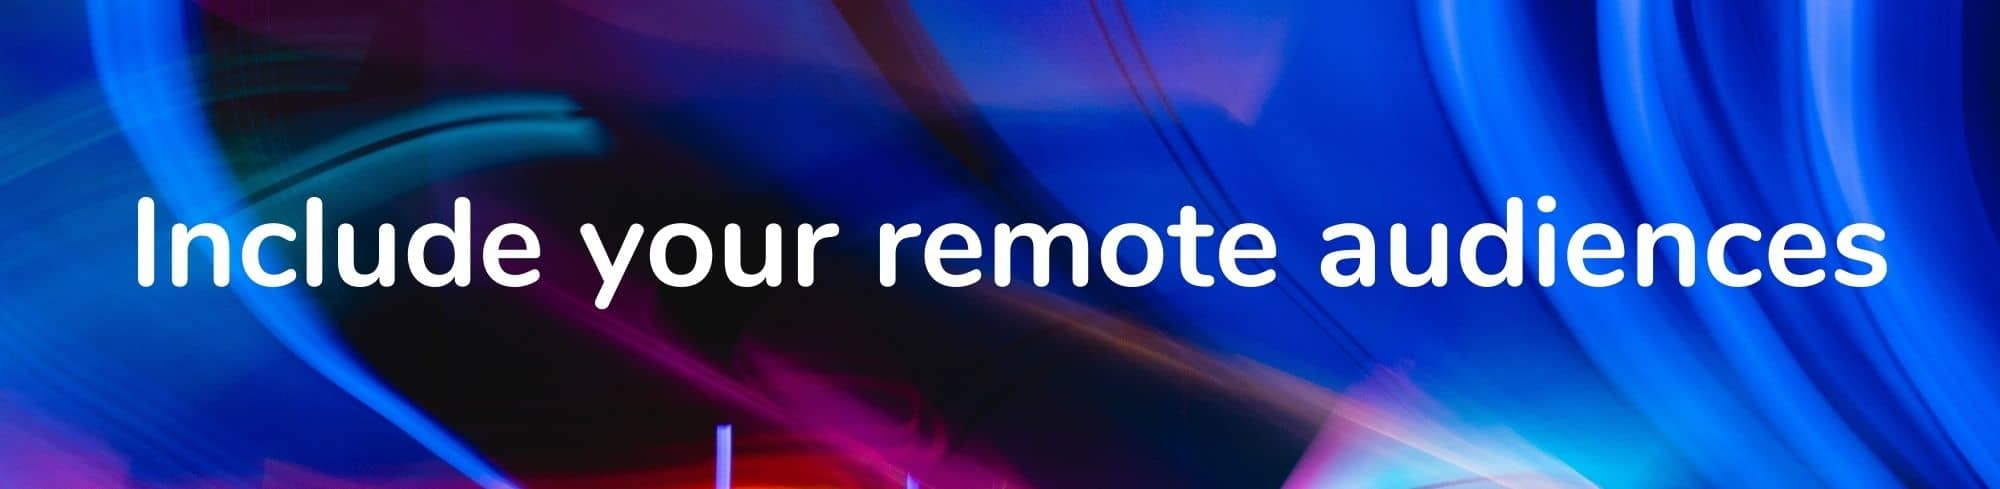 Include your remote audiences